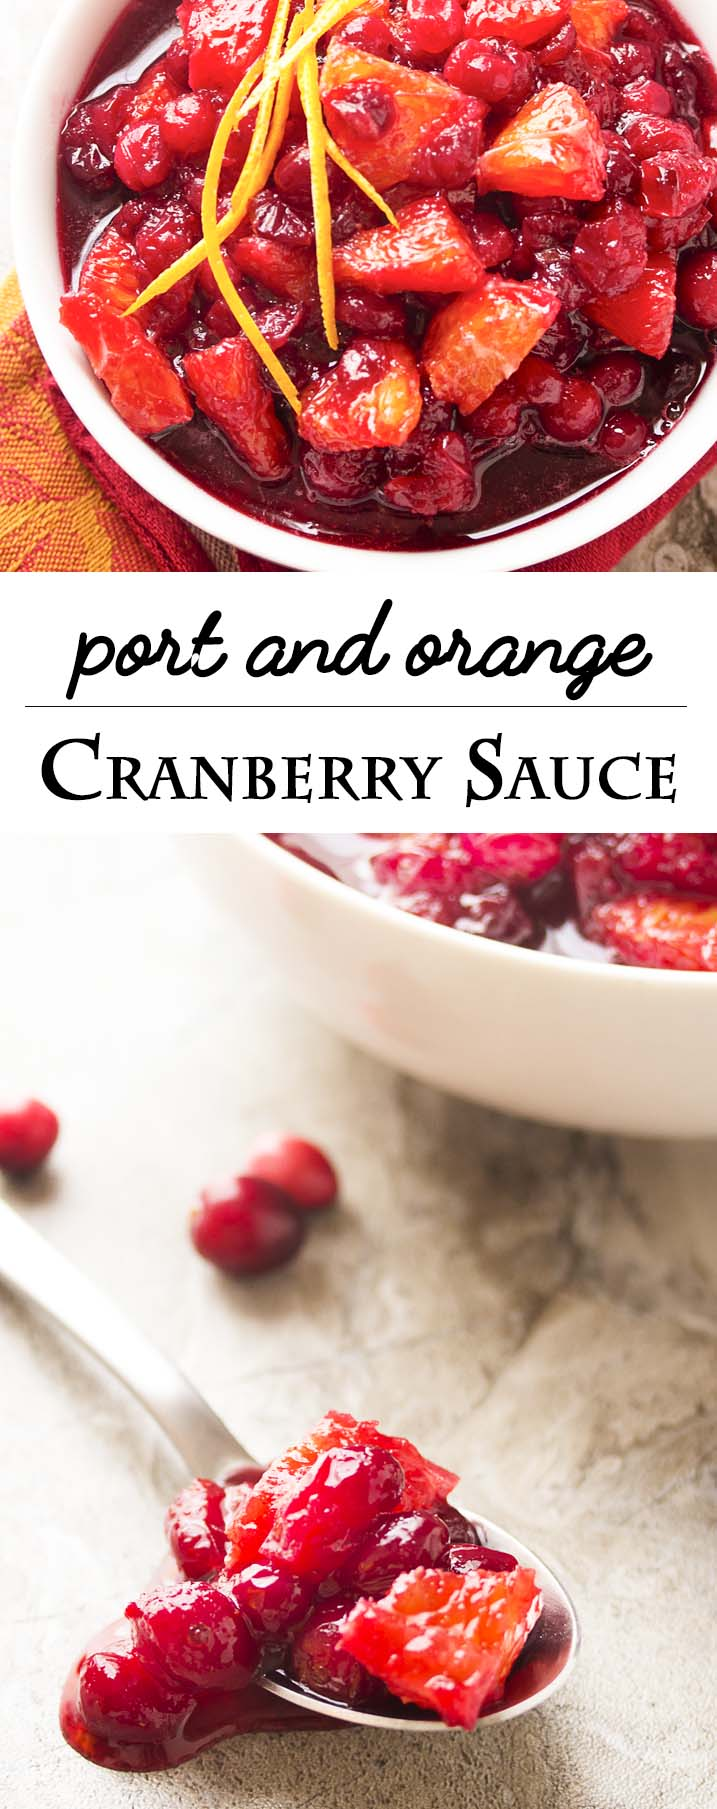 Check out this easy recipe for homemade cranberry sauce! Fresh cranberries are simmered in port wine and mixed with diced oranges to make a great Thanksgiving recipe for Cranberry Port Orange Sauce. | justalittlebitofbacon.com